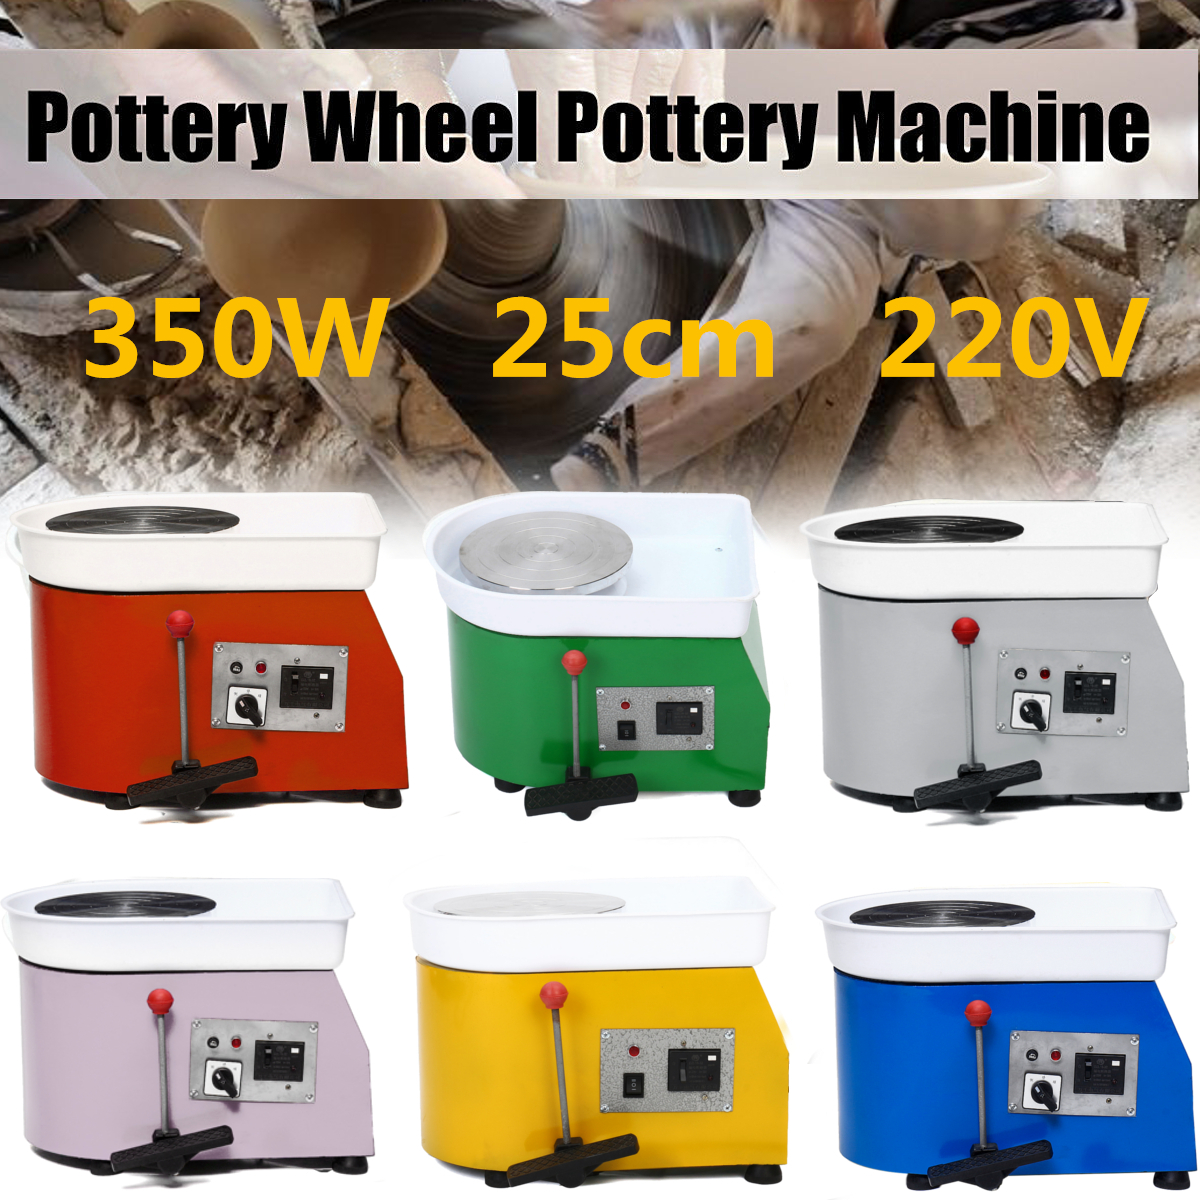 25cm 350W Pottery Wheel Pottery DIY Clay Machine For Ceramic Work Ceramics Clay 220V